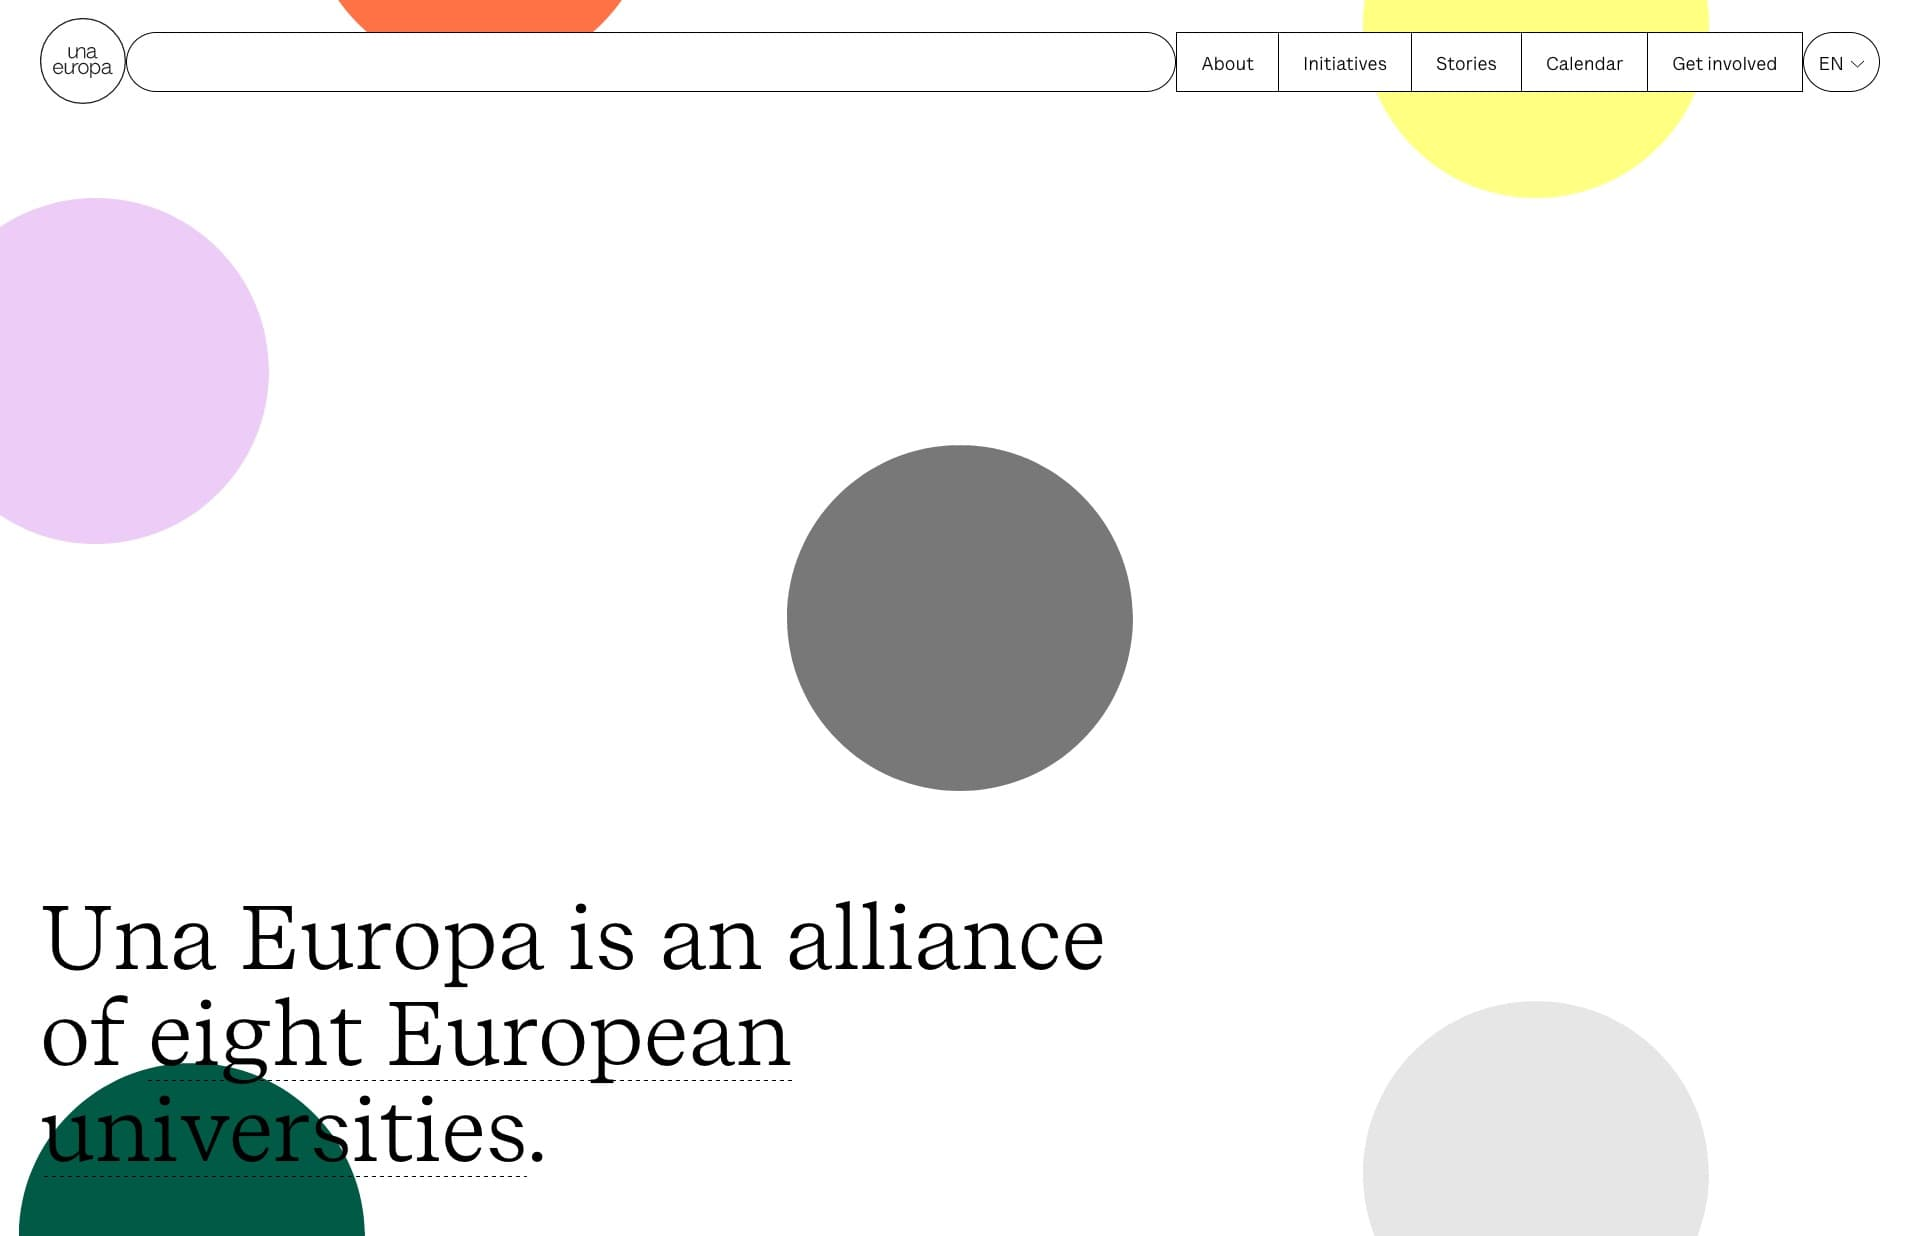 Screenshot of the website Una Europa, featured on The Gallery, a curated collection of minimal websites